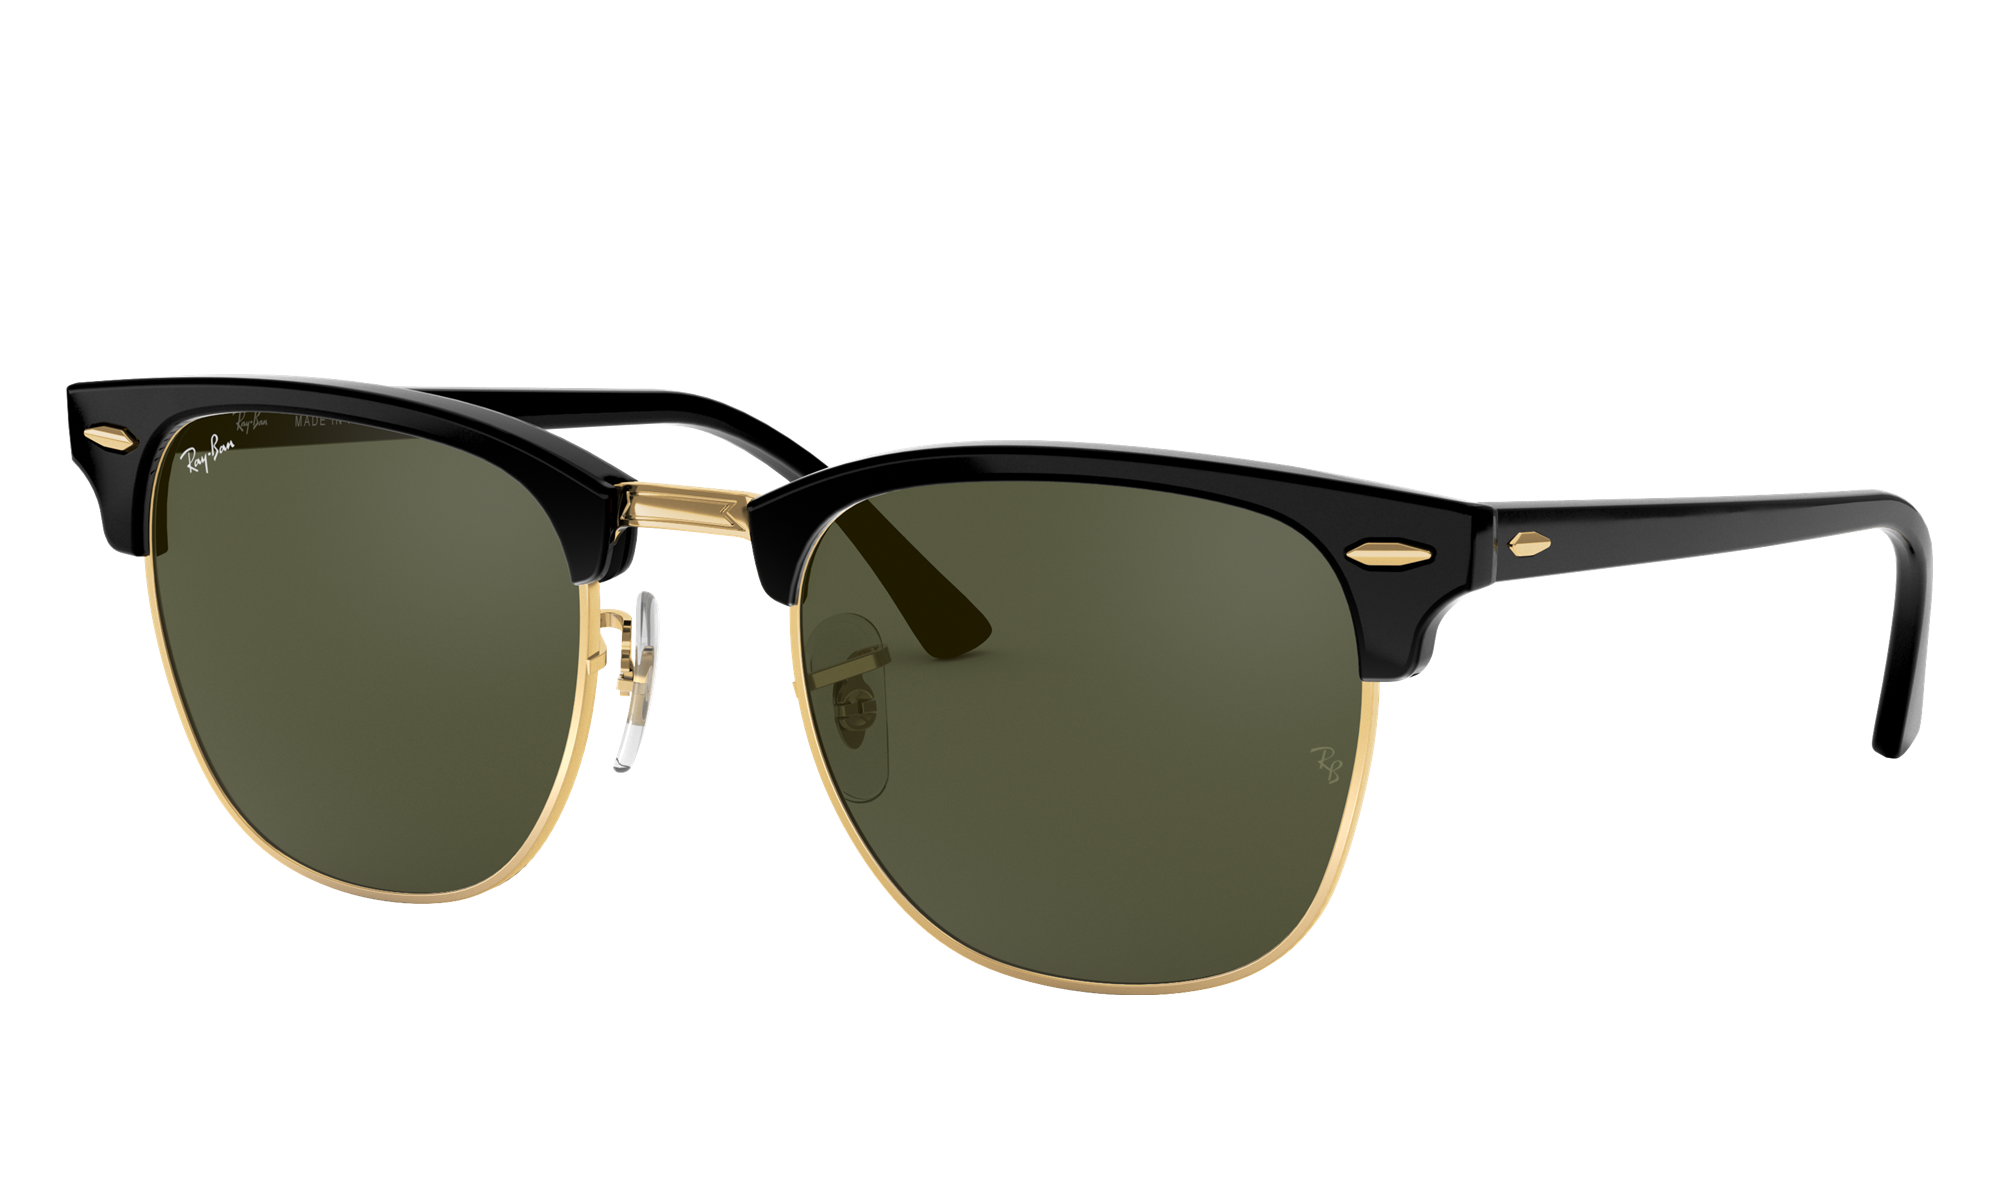 1960s Men's Clothing Ray-Ban Unisex Clubmaster Classic Black Size Standard $154.00 AT vintagedancer.com